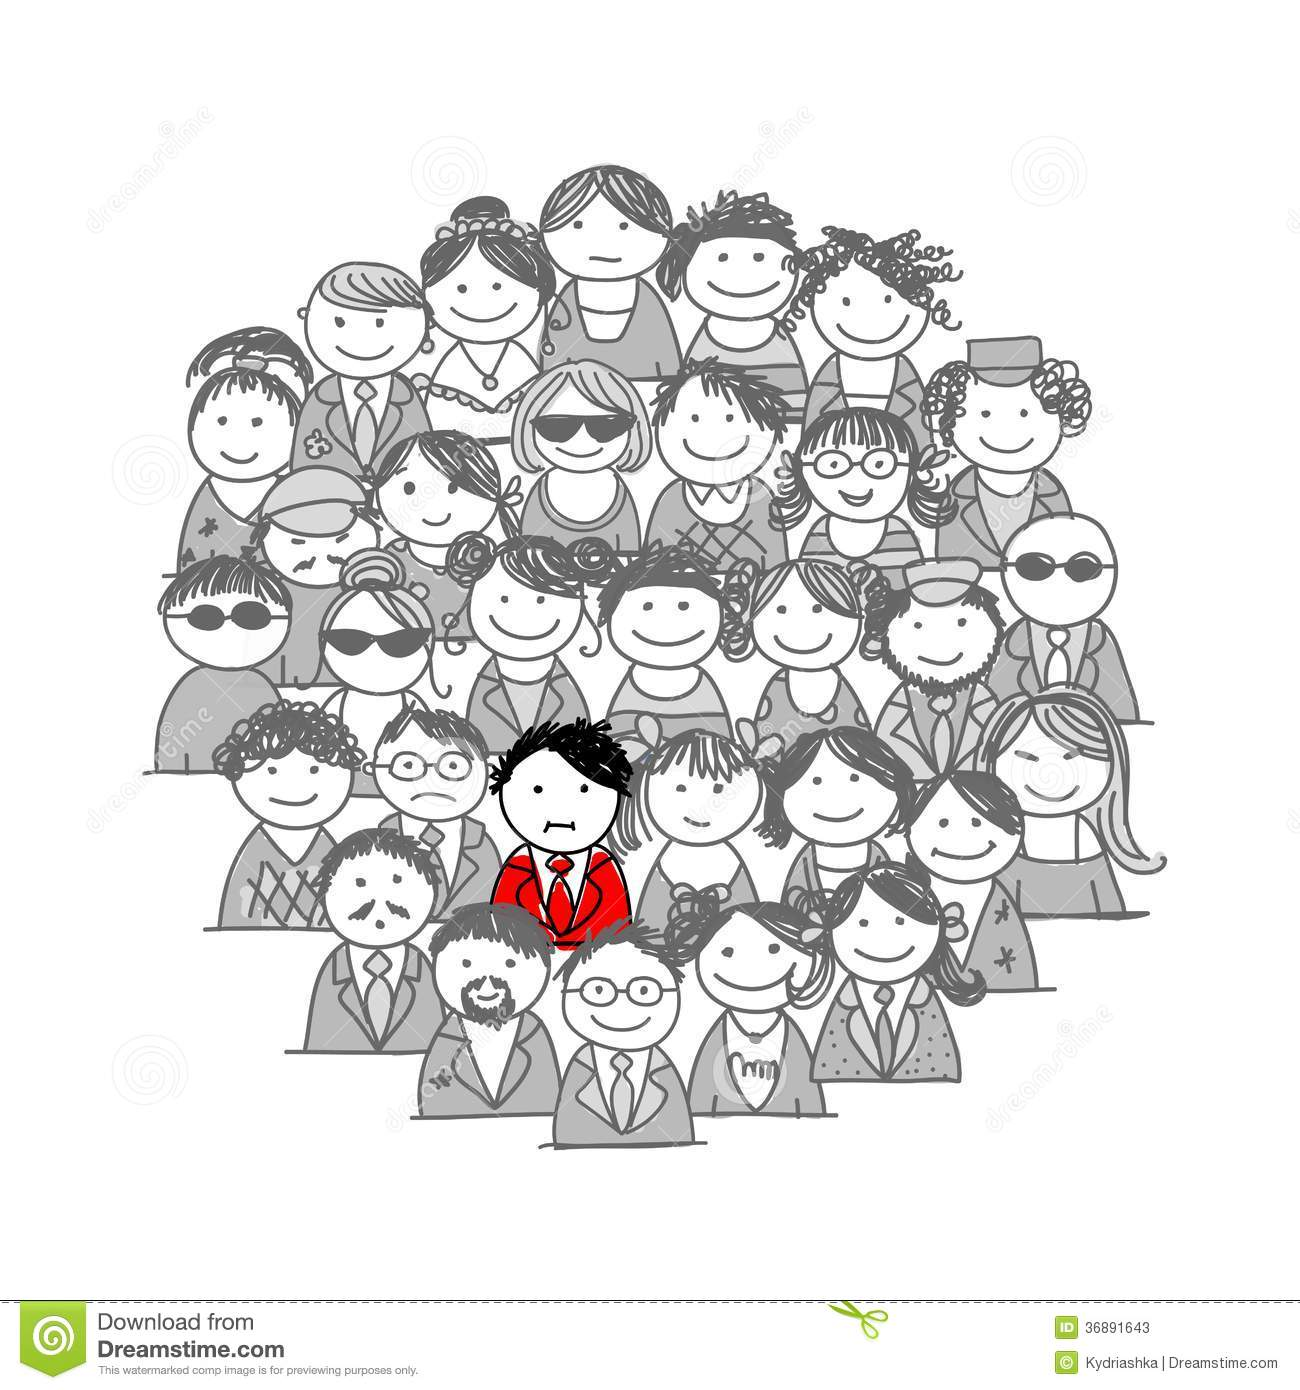 Crowd of people, sketch for your design